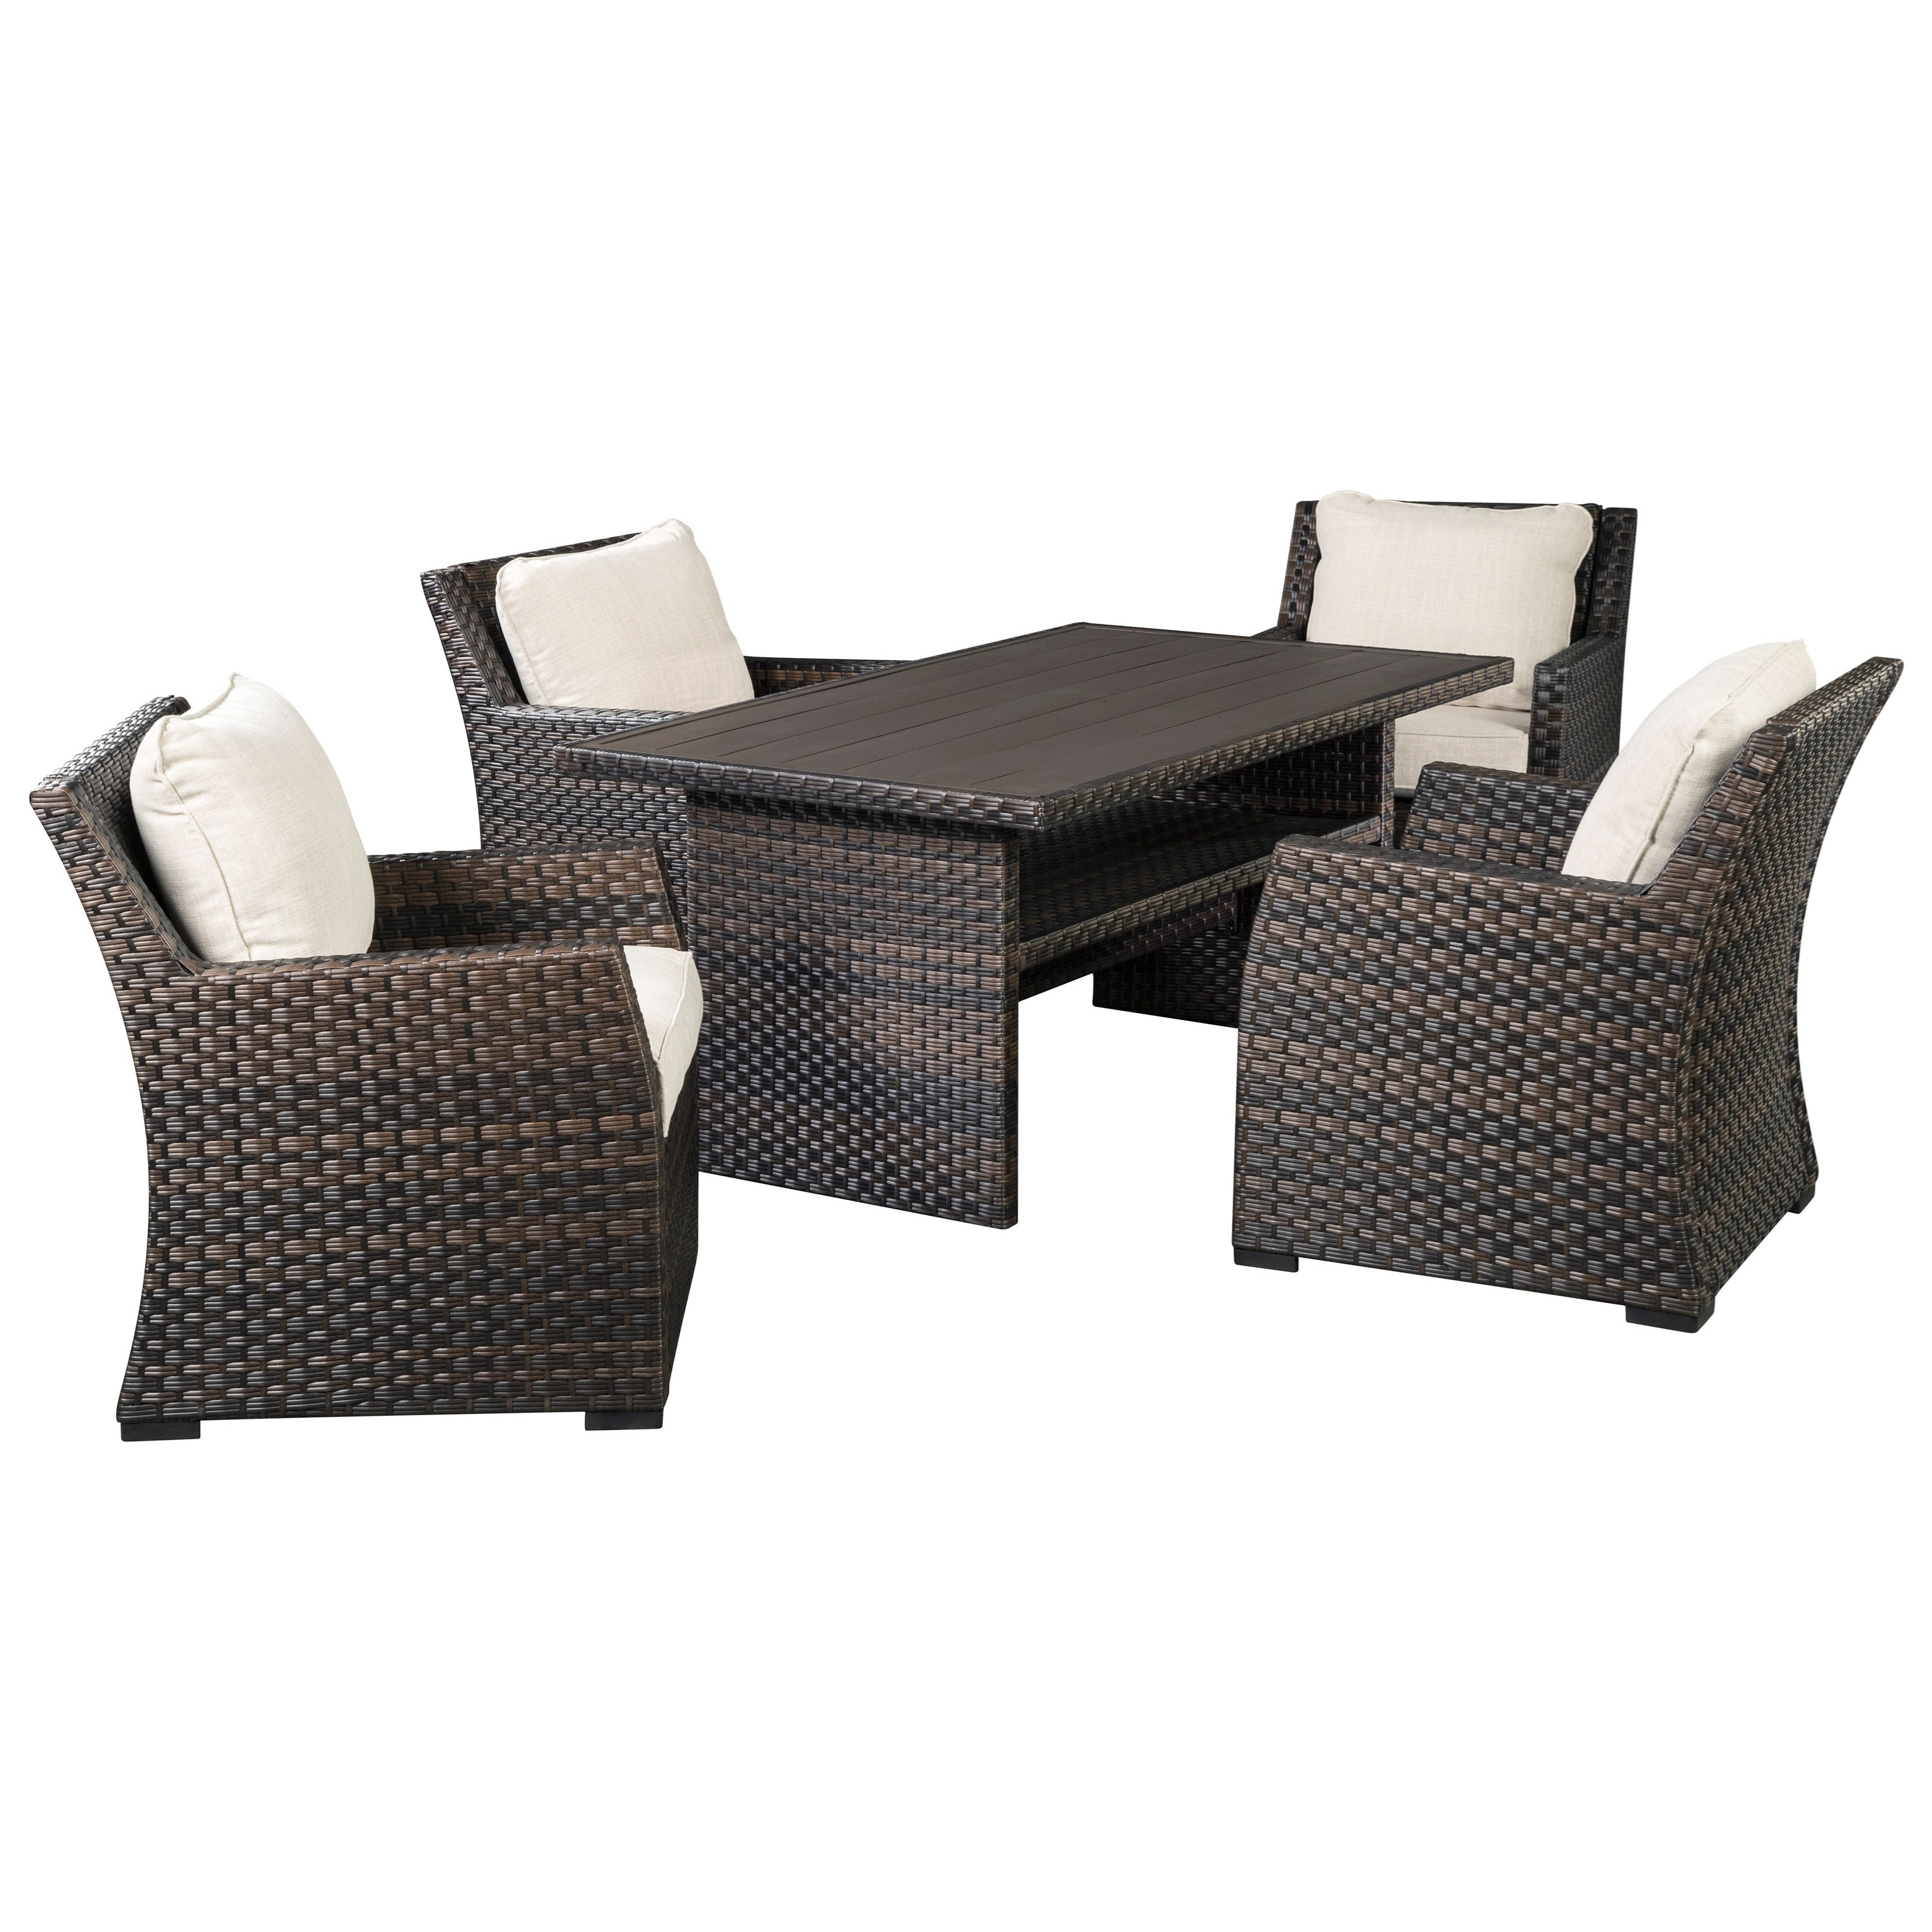 Easy Isle Multi-Use Table & 4 Lounge Chairs by Signature Design by Ashley at HomeWorld Furniture